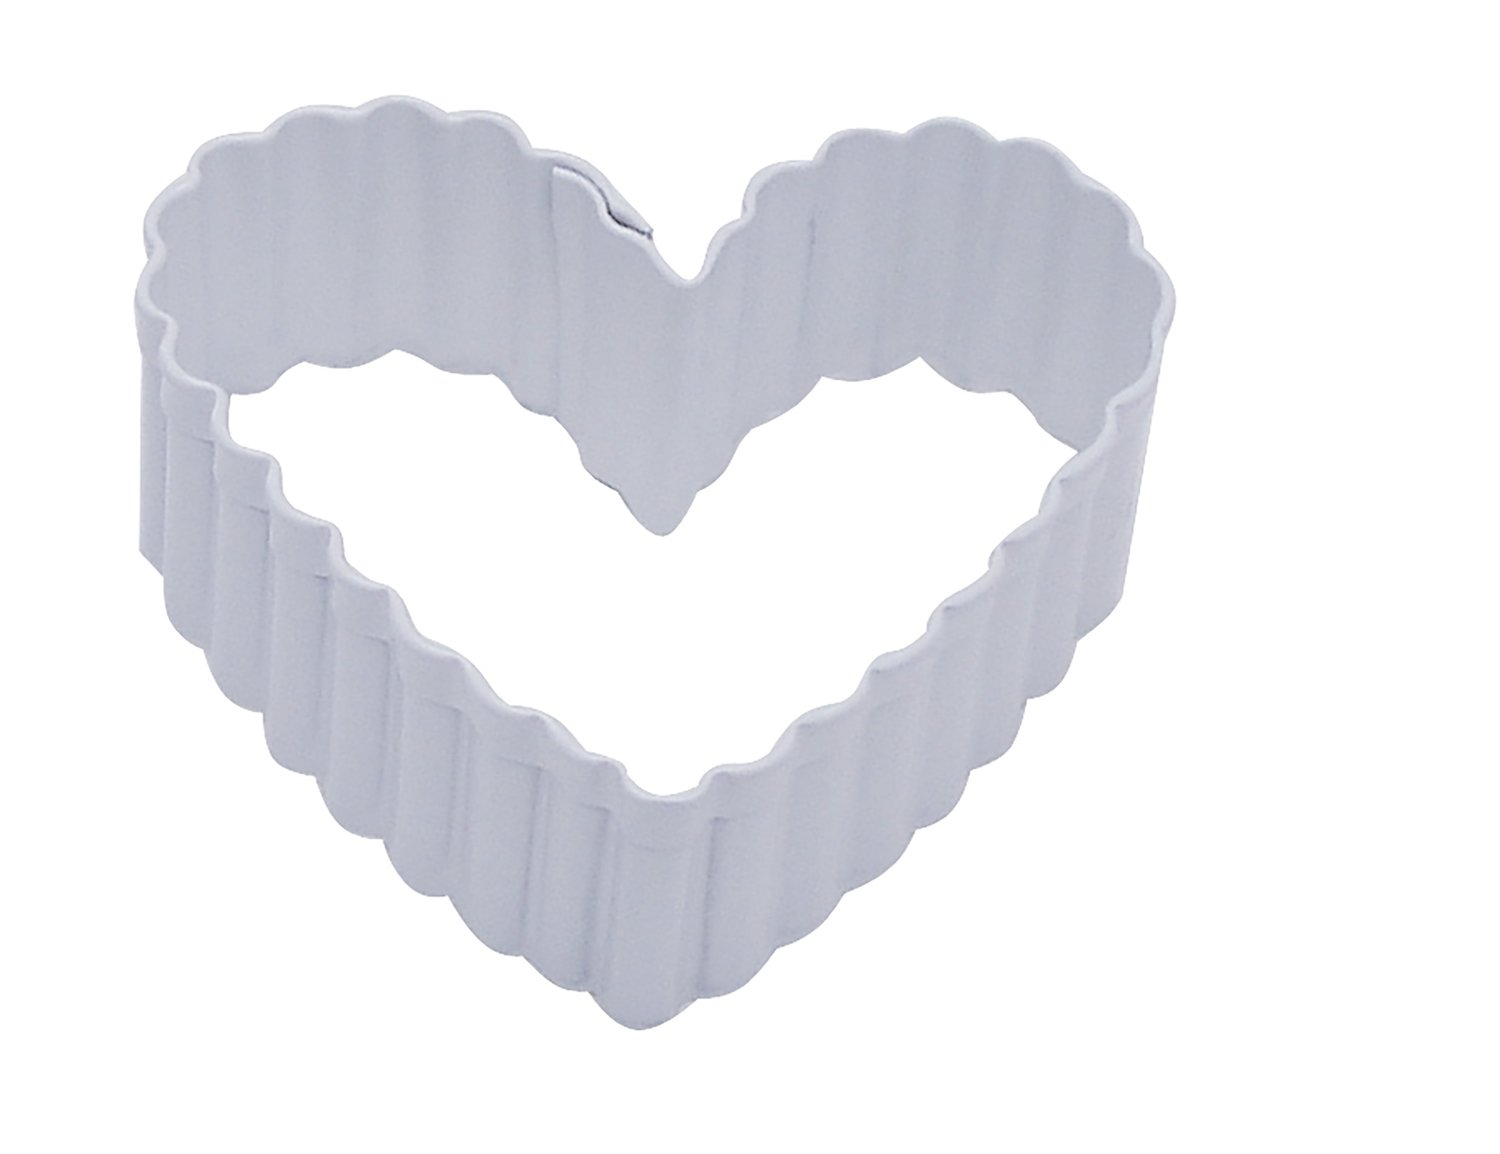 by AH -Cookie Cutter -FLUTED HEART -Κουπάτ Kυματοειδής Καρδιά  6εκ